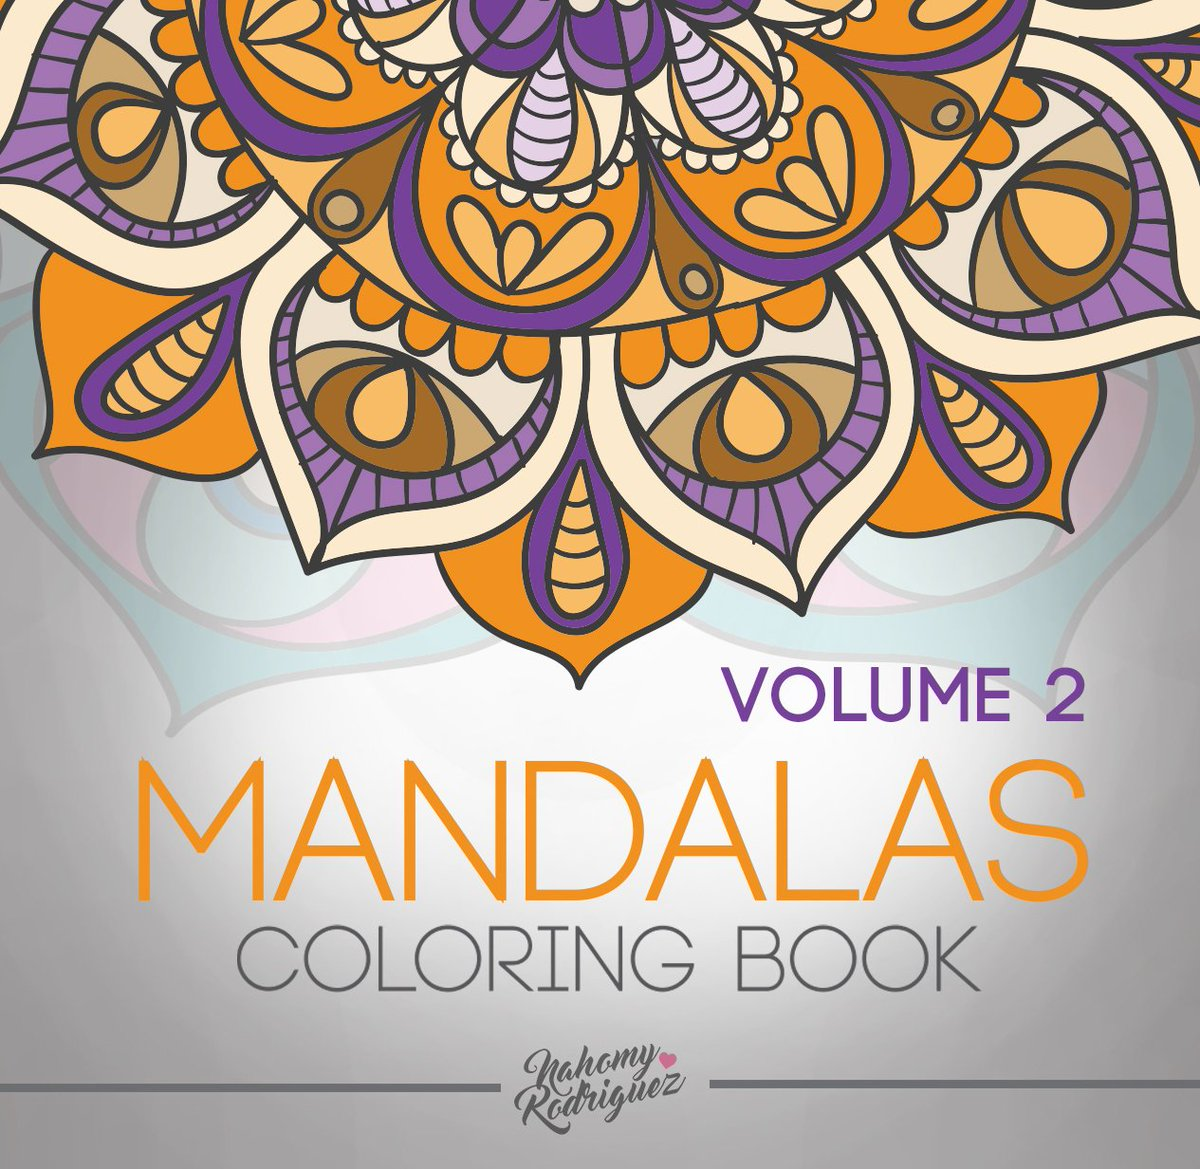 How to say colouring book in japanese - Mandalas Coloring Book Volume 2 Find It On My Etsy Shop Mandalas Coloring Etsy Coloringbook Http Ow Ly W2dg30dqrxk Pic Twitter Com 0udsn6ekob